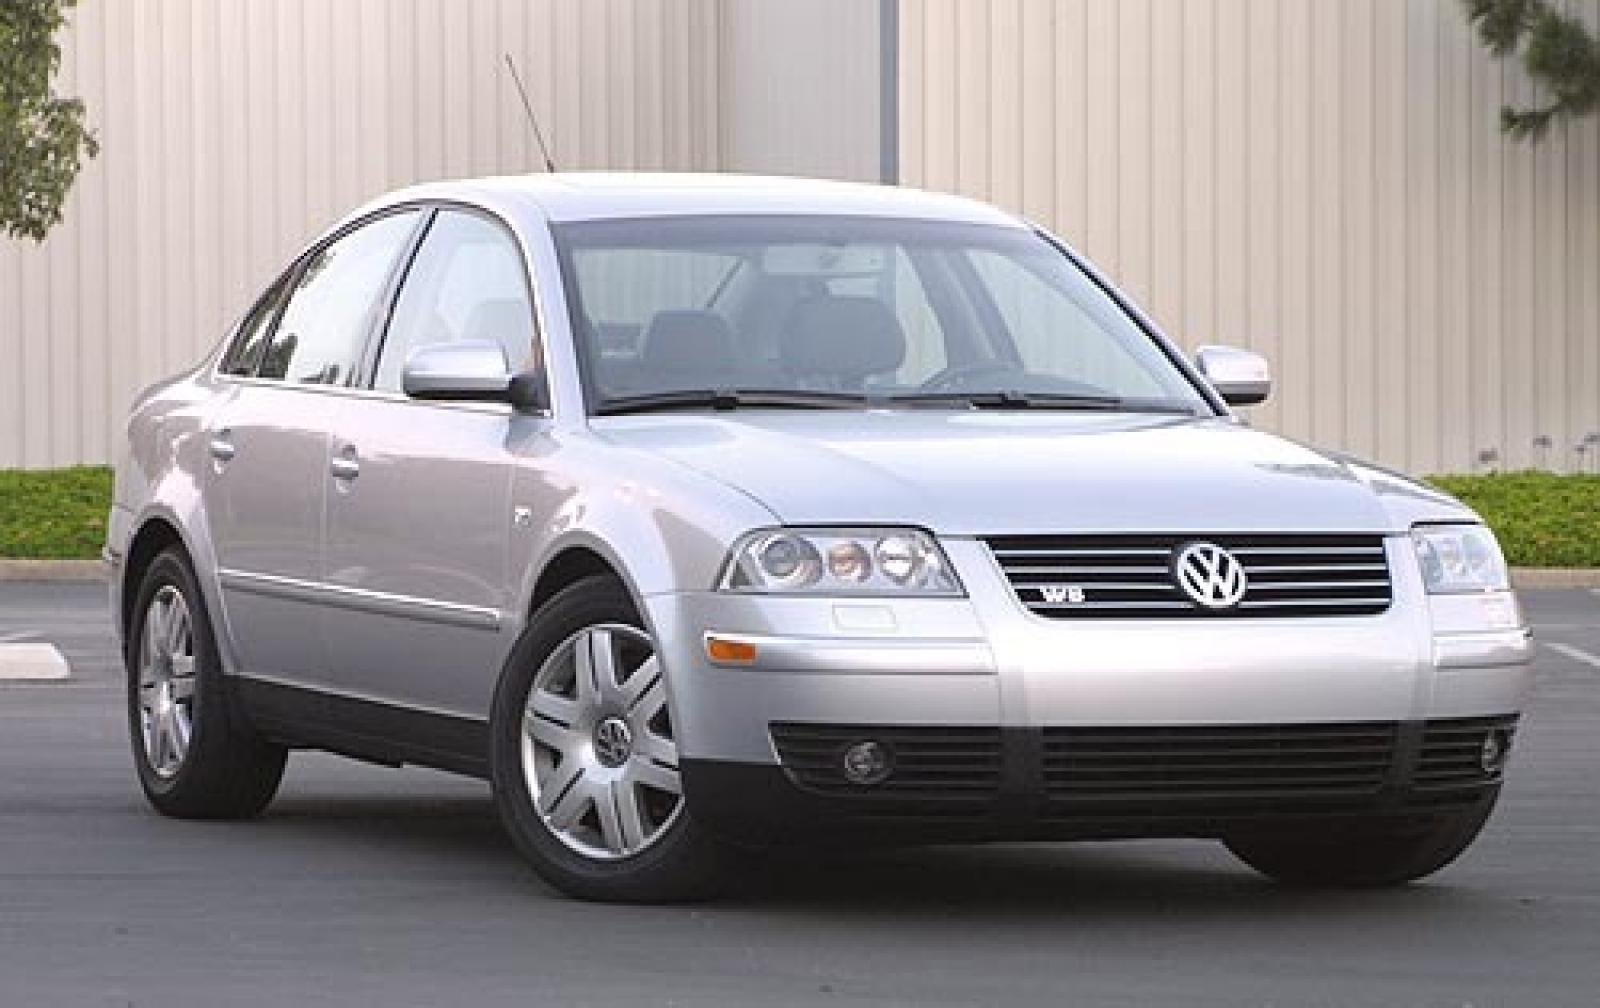 2004 volkswagen passat information and photos zombiedrive. Black Bedroom Furniture Sets. Home Design Ideas